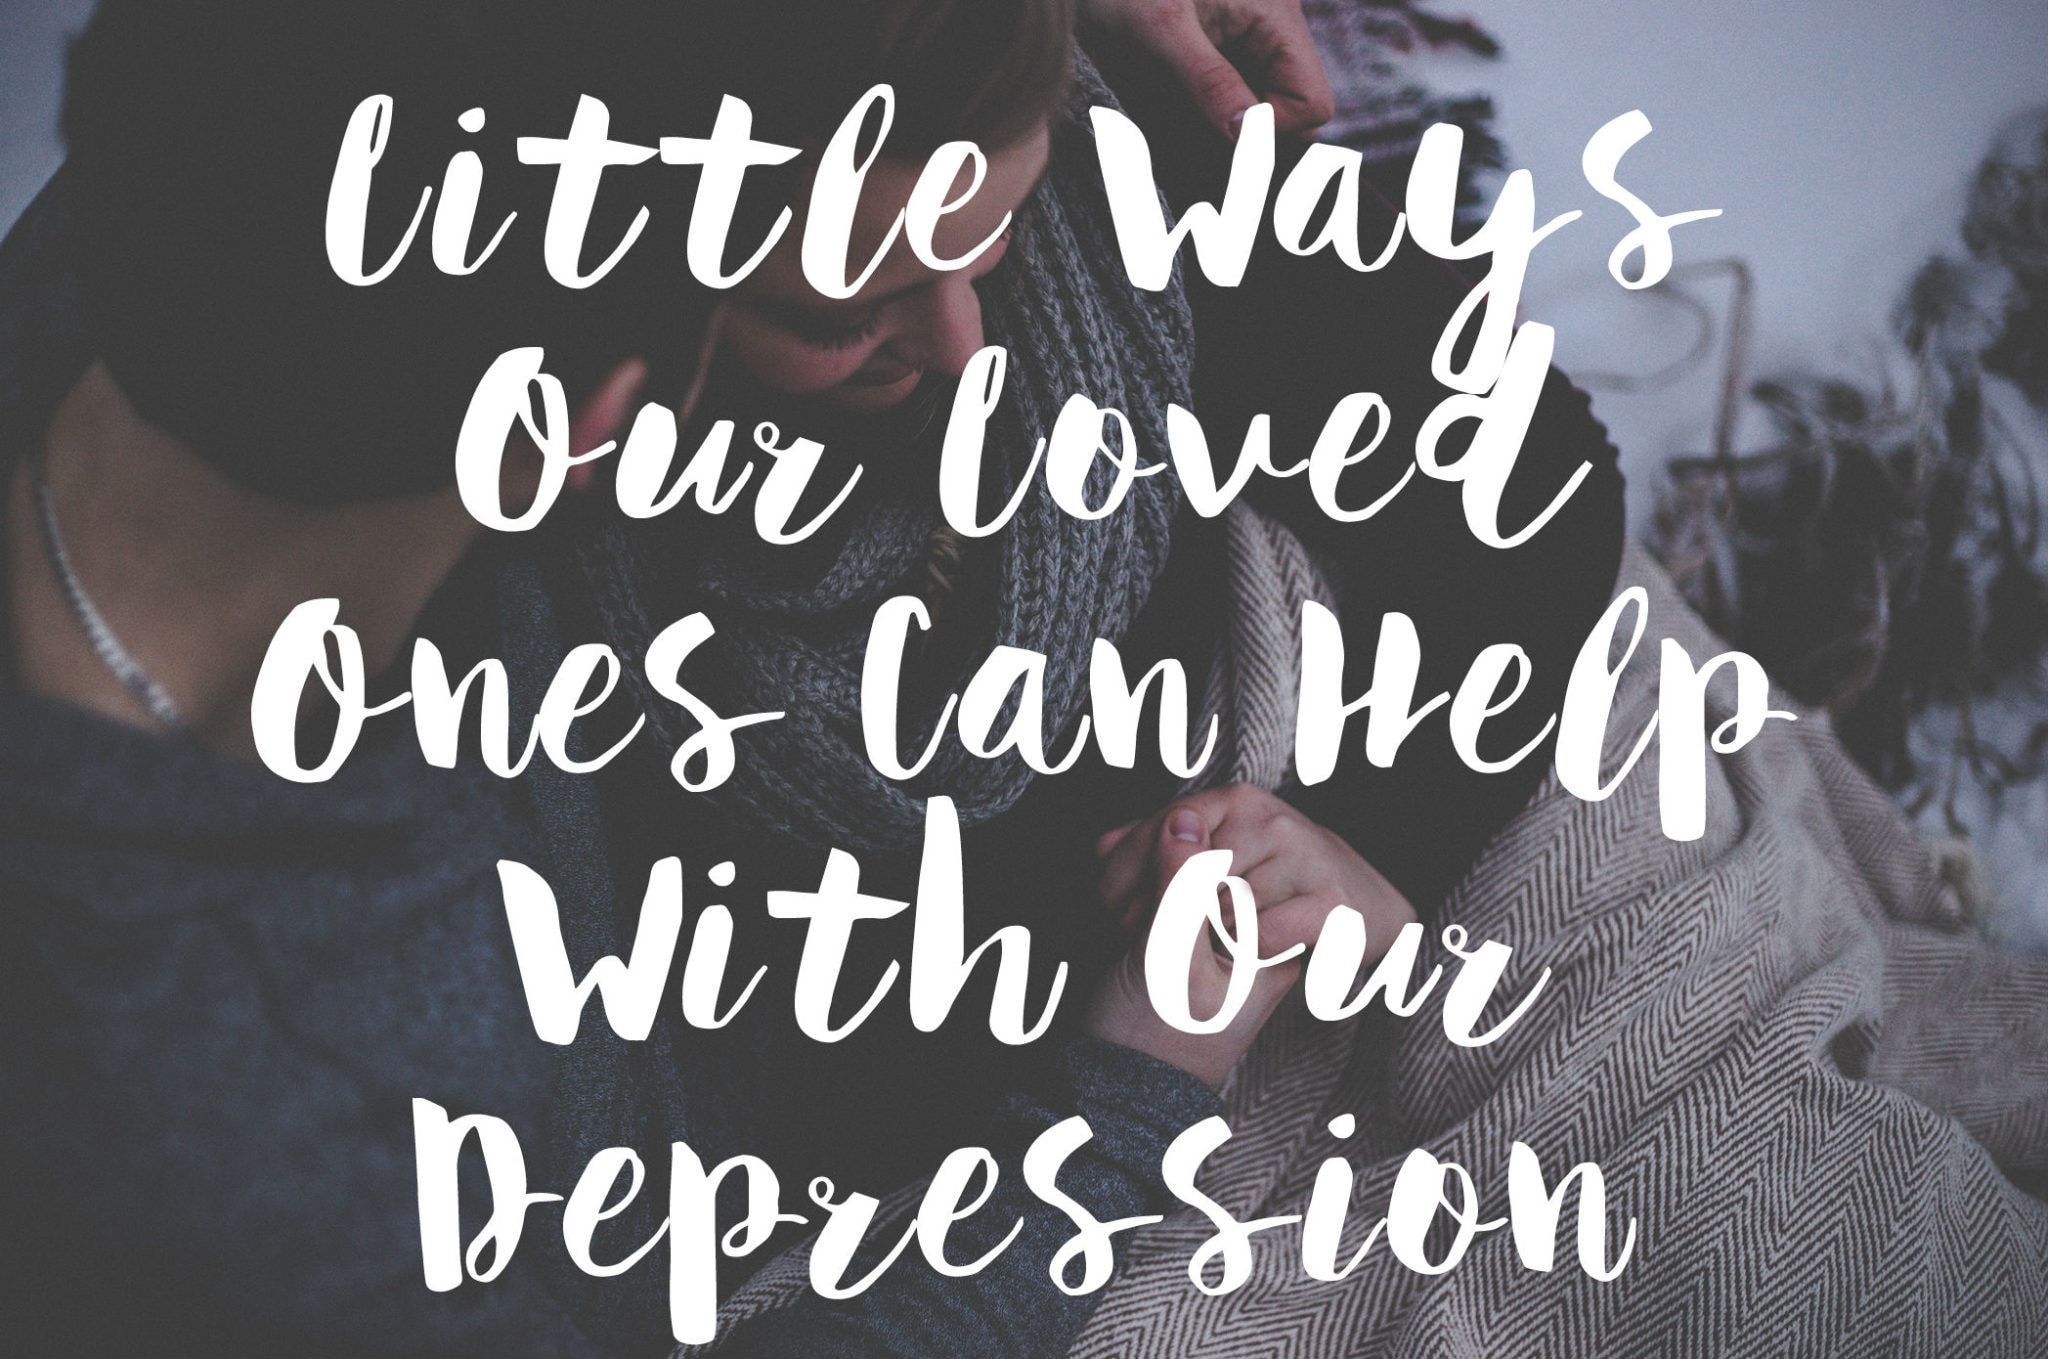 LITTLE WAYS OUR LOVED ONES CAN HELP WITH OUR DEPRESSION